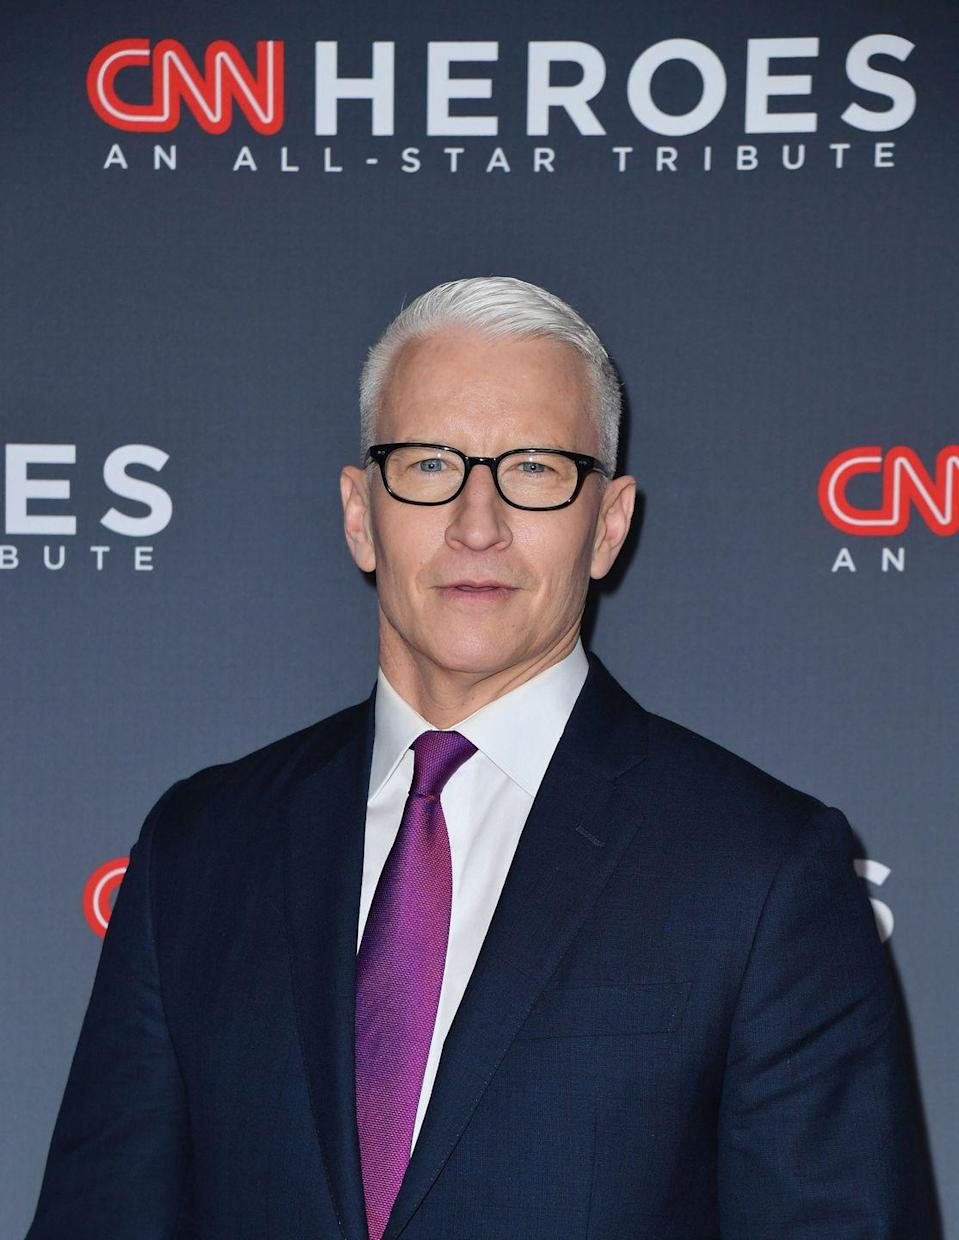 <p><strong>Schedule: </strong>April 19 - April 30</p><p>When he's not anchoring <em>Anderson Cooper 360 </em>on CNN or reporting for <em>60 Minutes</em>, Anderson will be reading off clues on <em>Jeopardy! </em>in the early evening. </p>